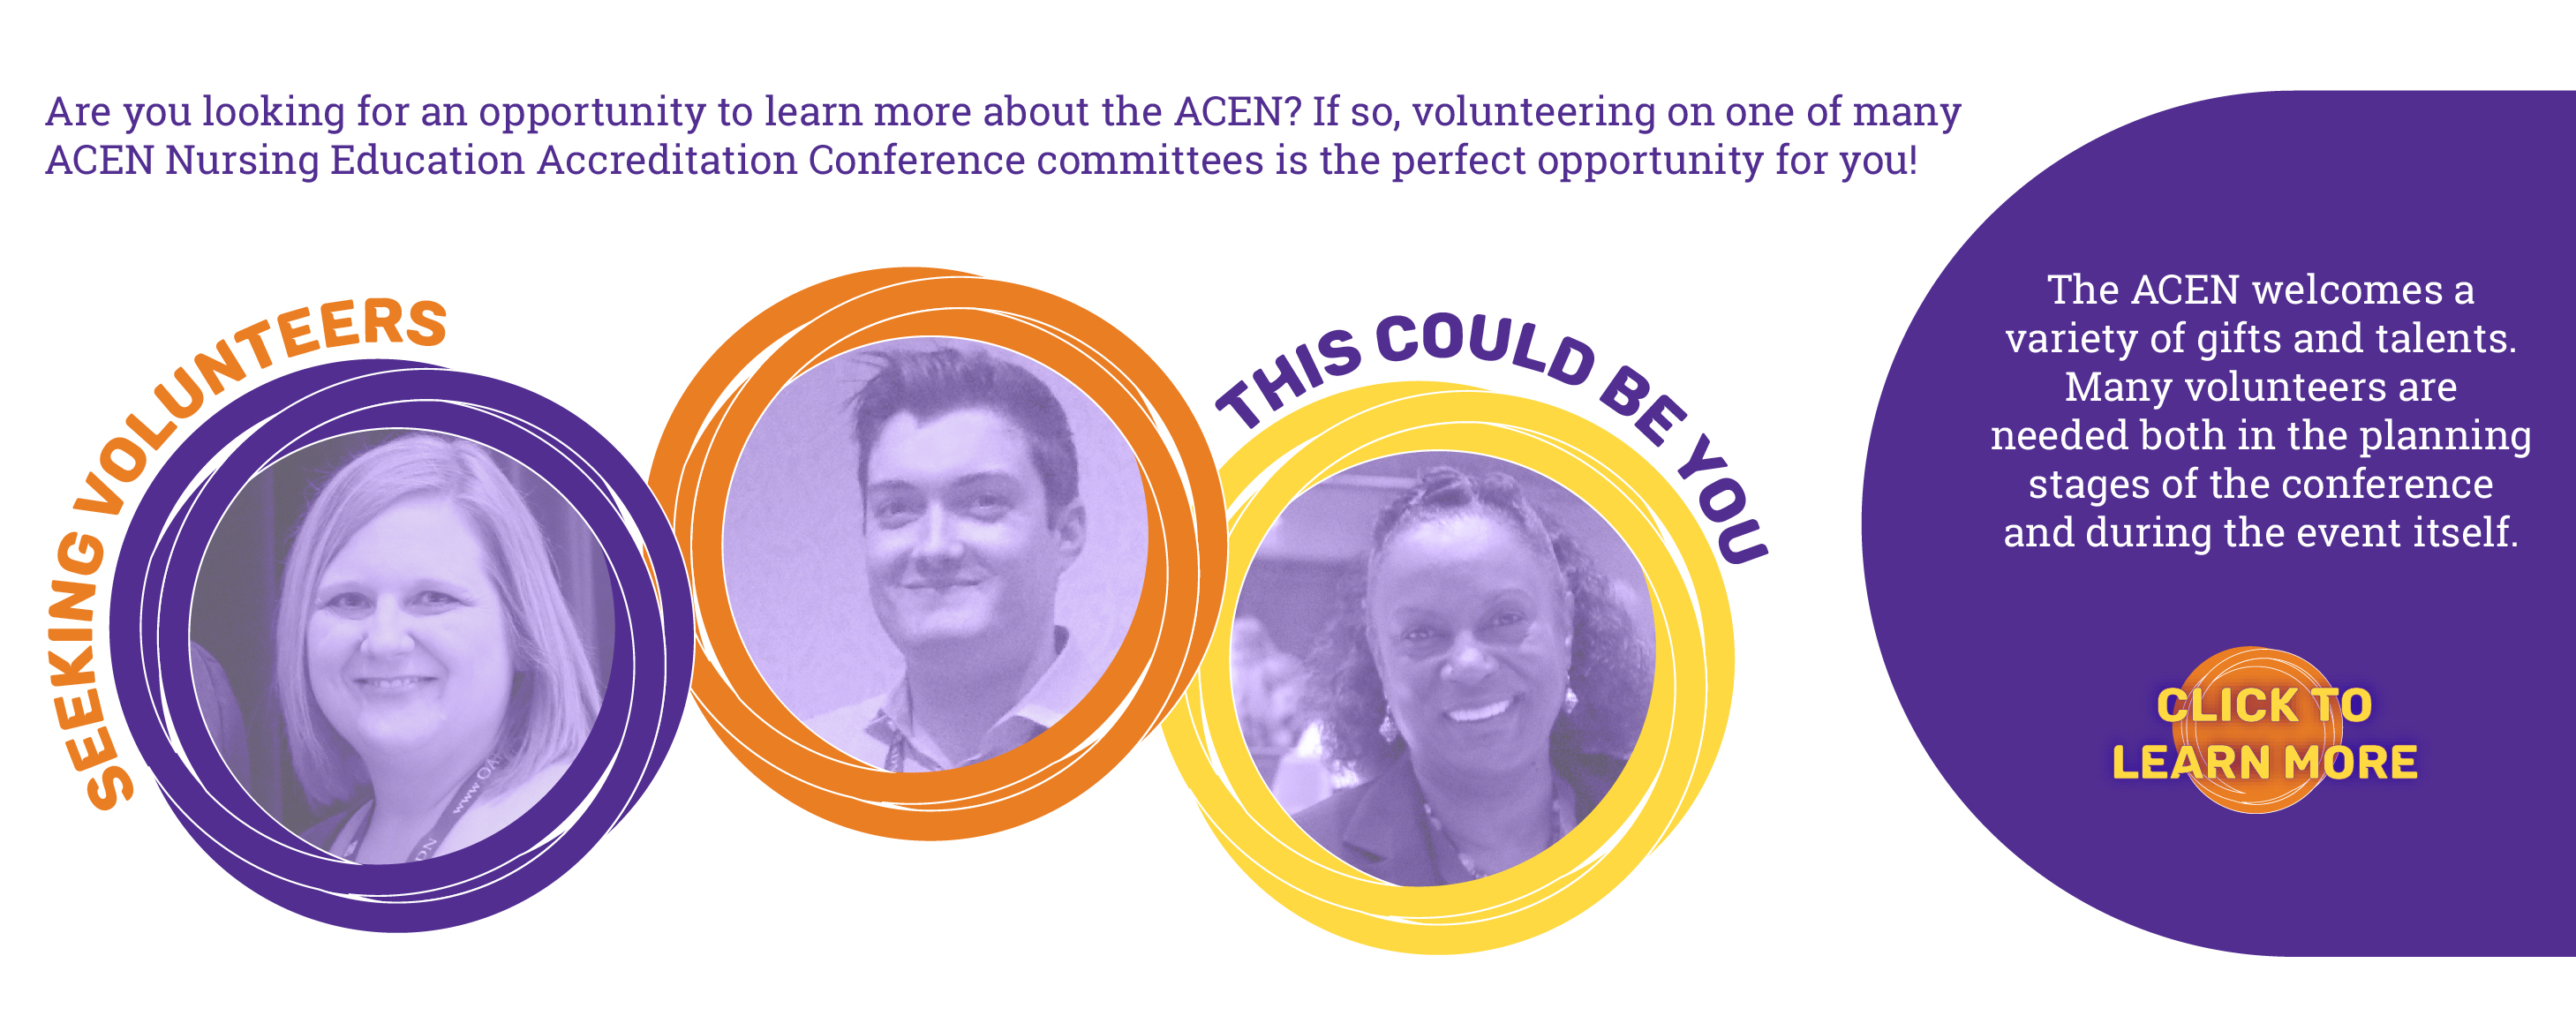 Seeking Volunteers for the ACEN Annual Conference